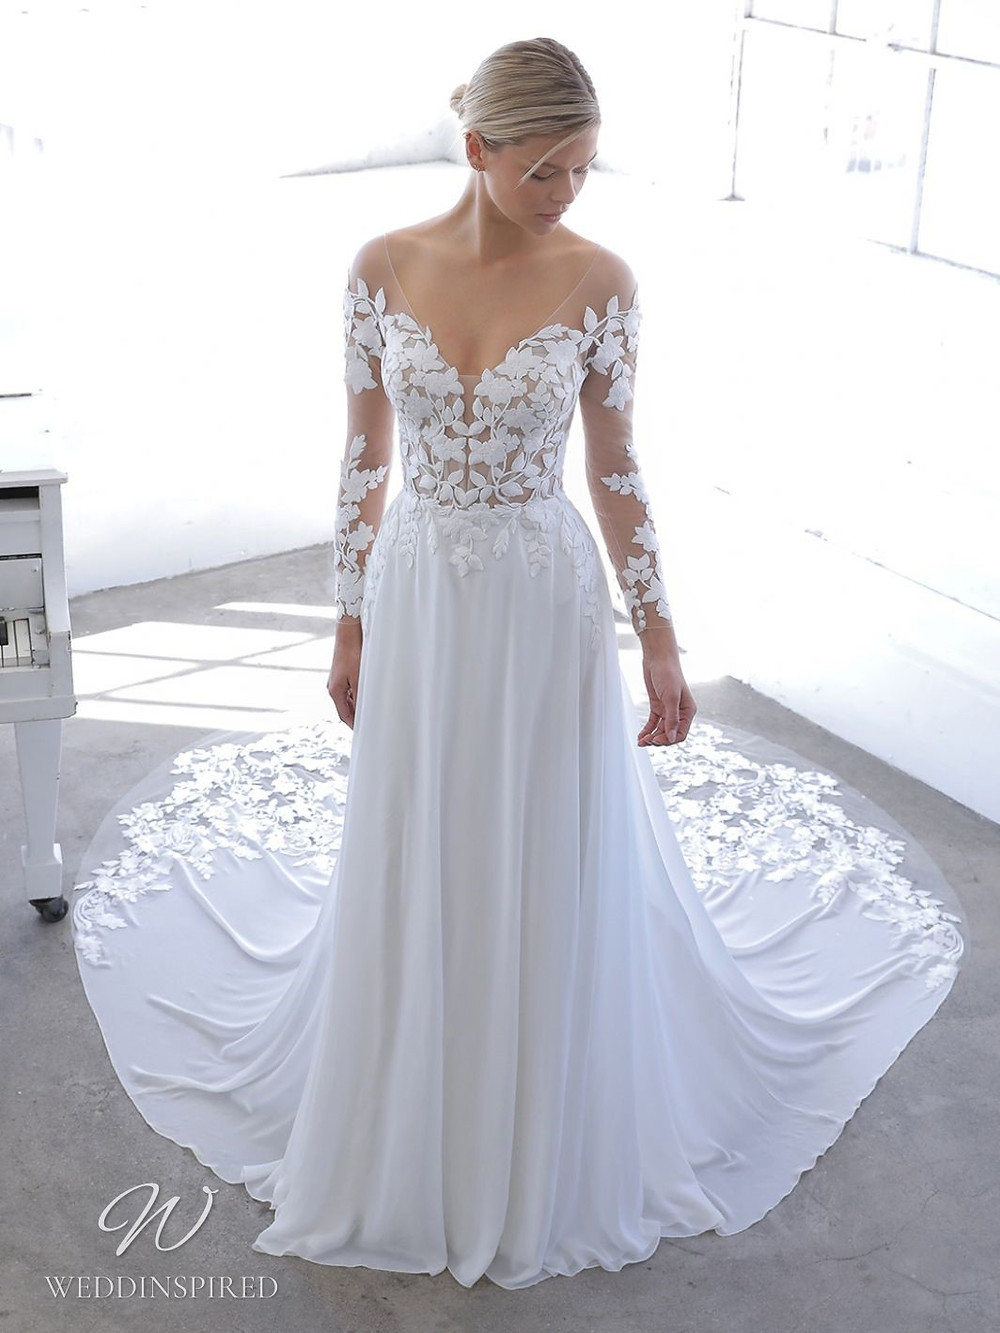 A Blue by Enzoani 2021 lace and crepe A-line wedding dress with long illusion sleeves